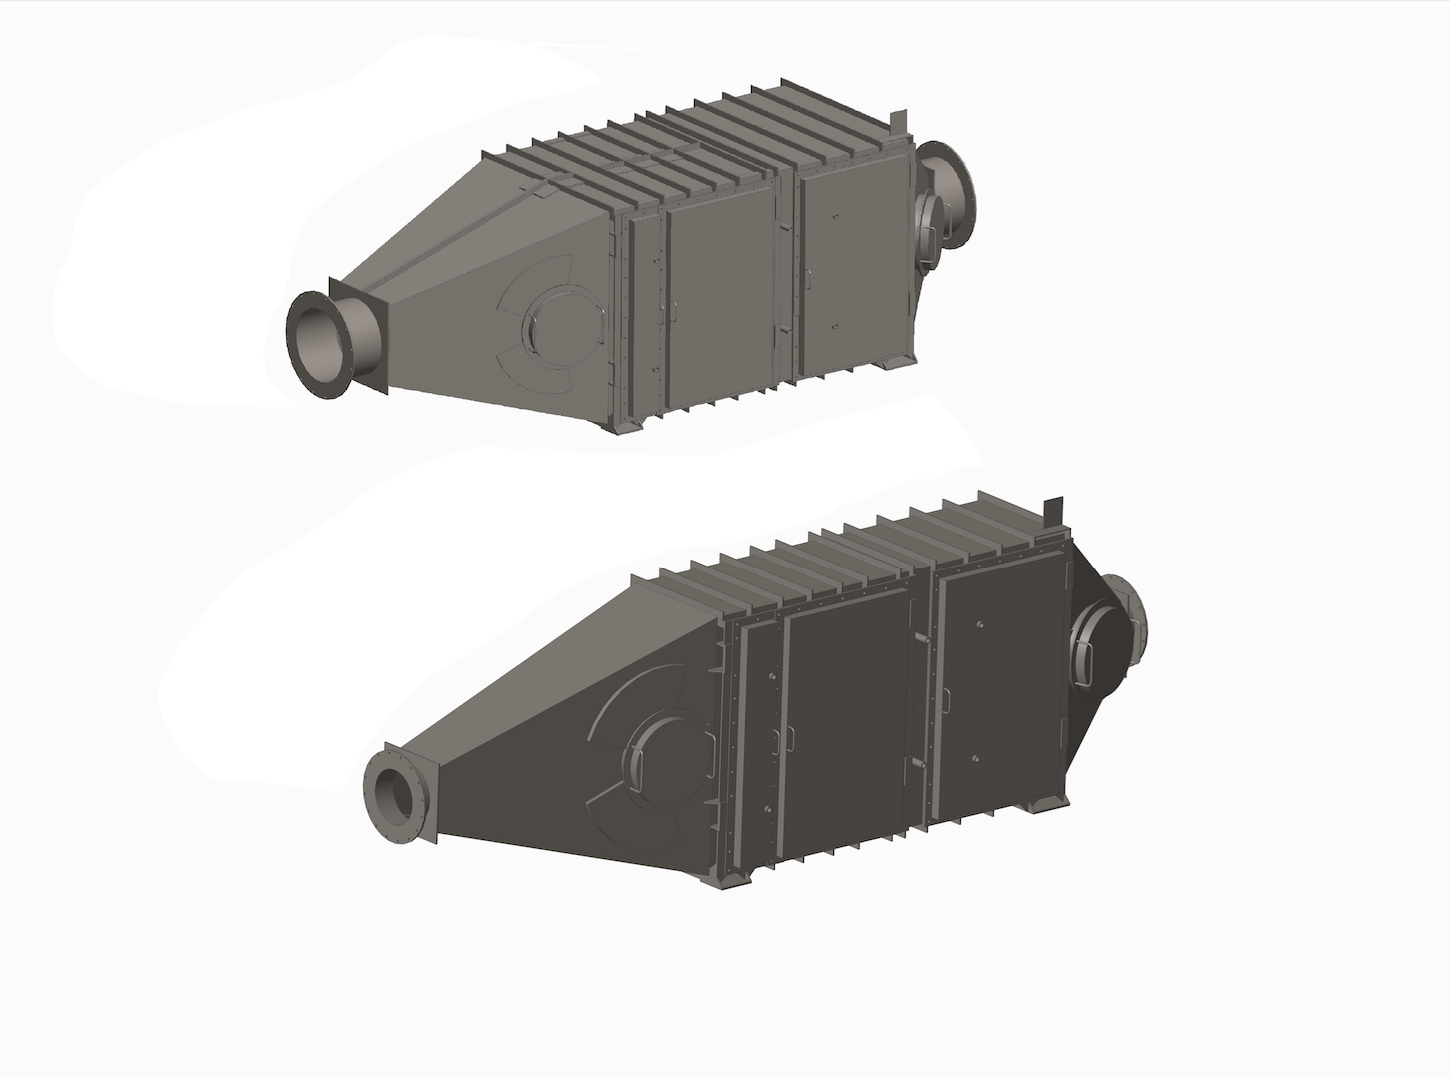 Filter Housing for the Mobile Launcher